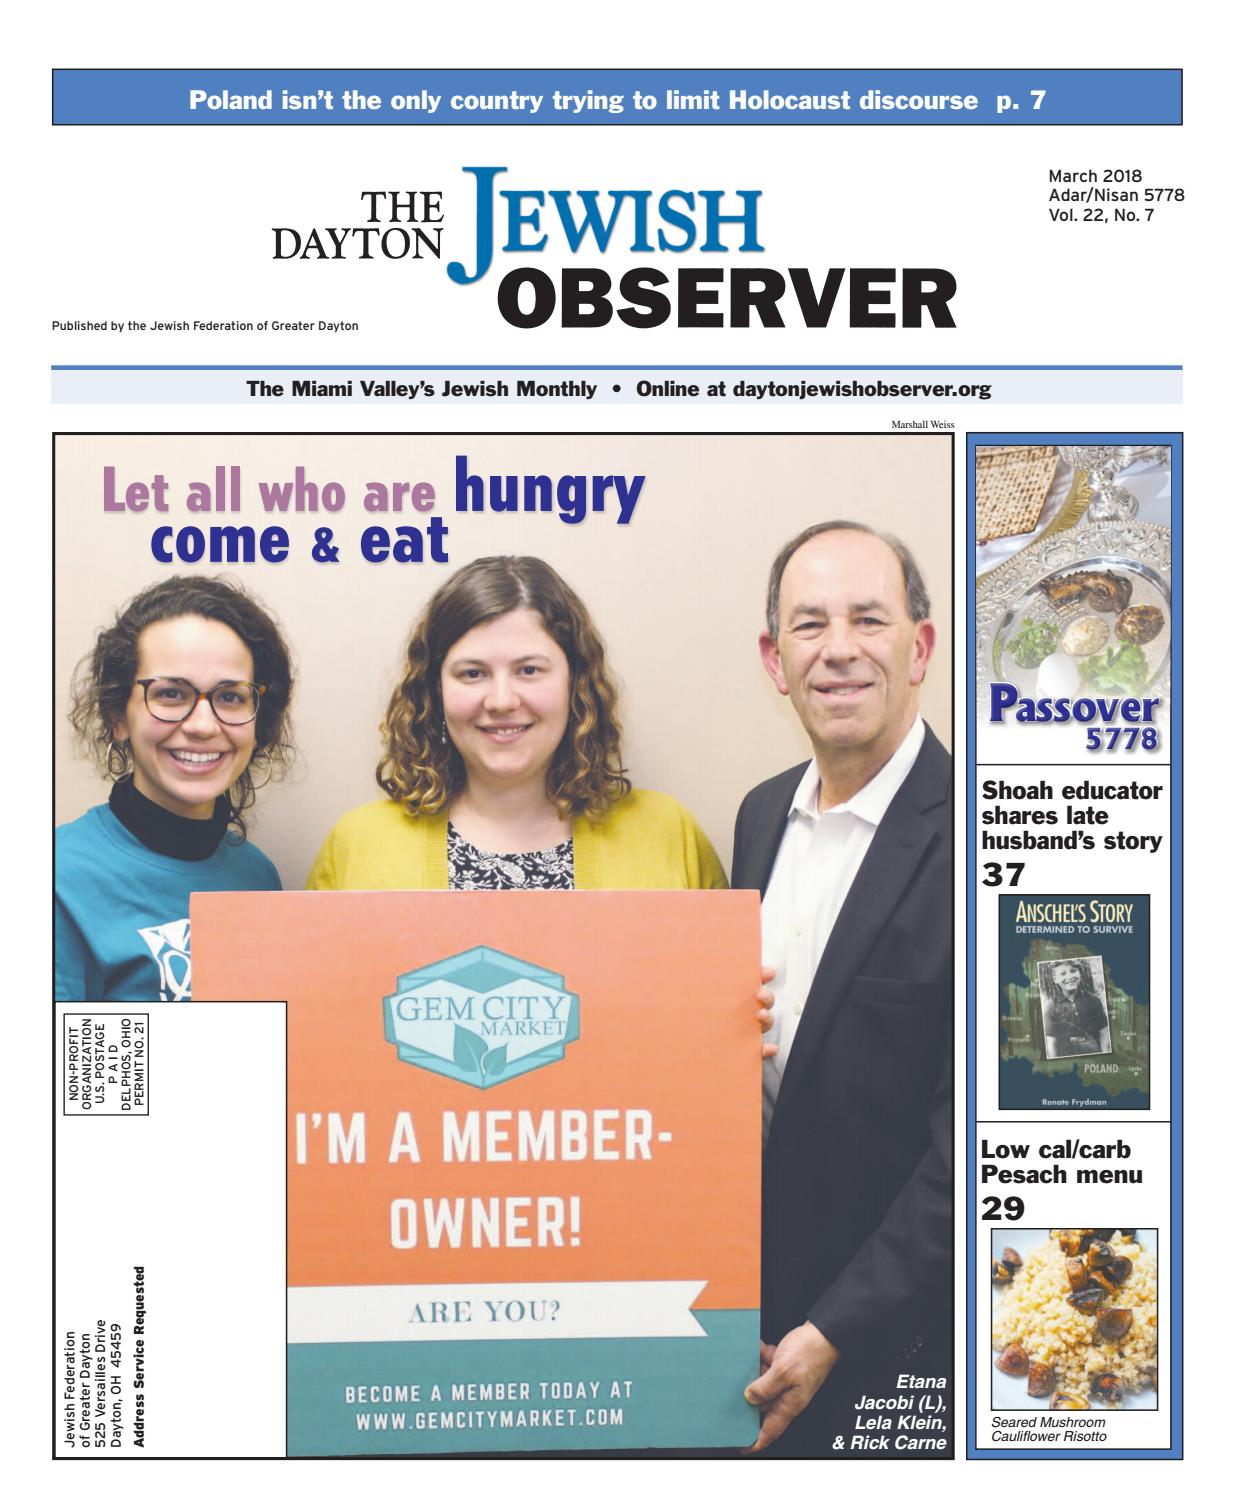 The dayton jewish observer march 2018 by the dayton jewish observer the dayton jewish observer march 2018 by the dayton jewish observer issuu malvernweather Images